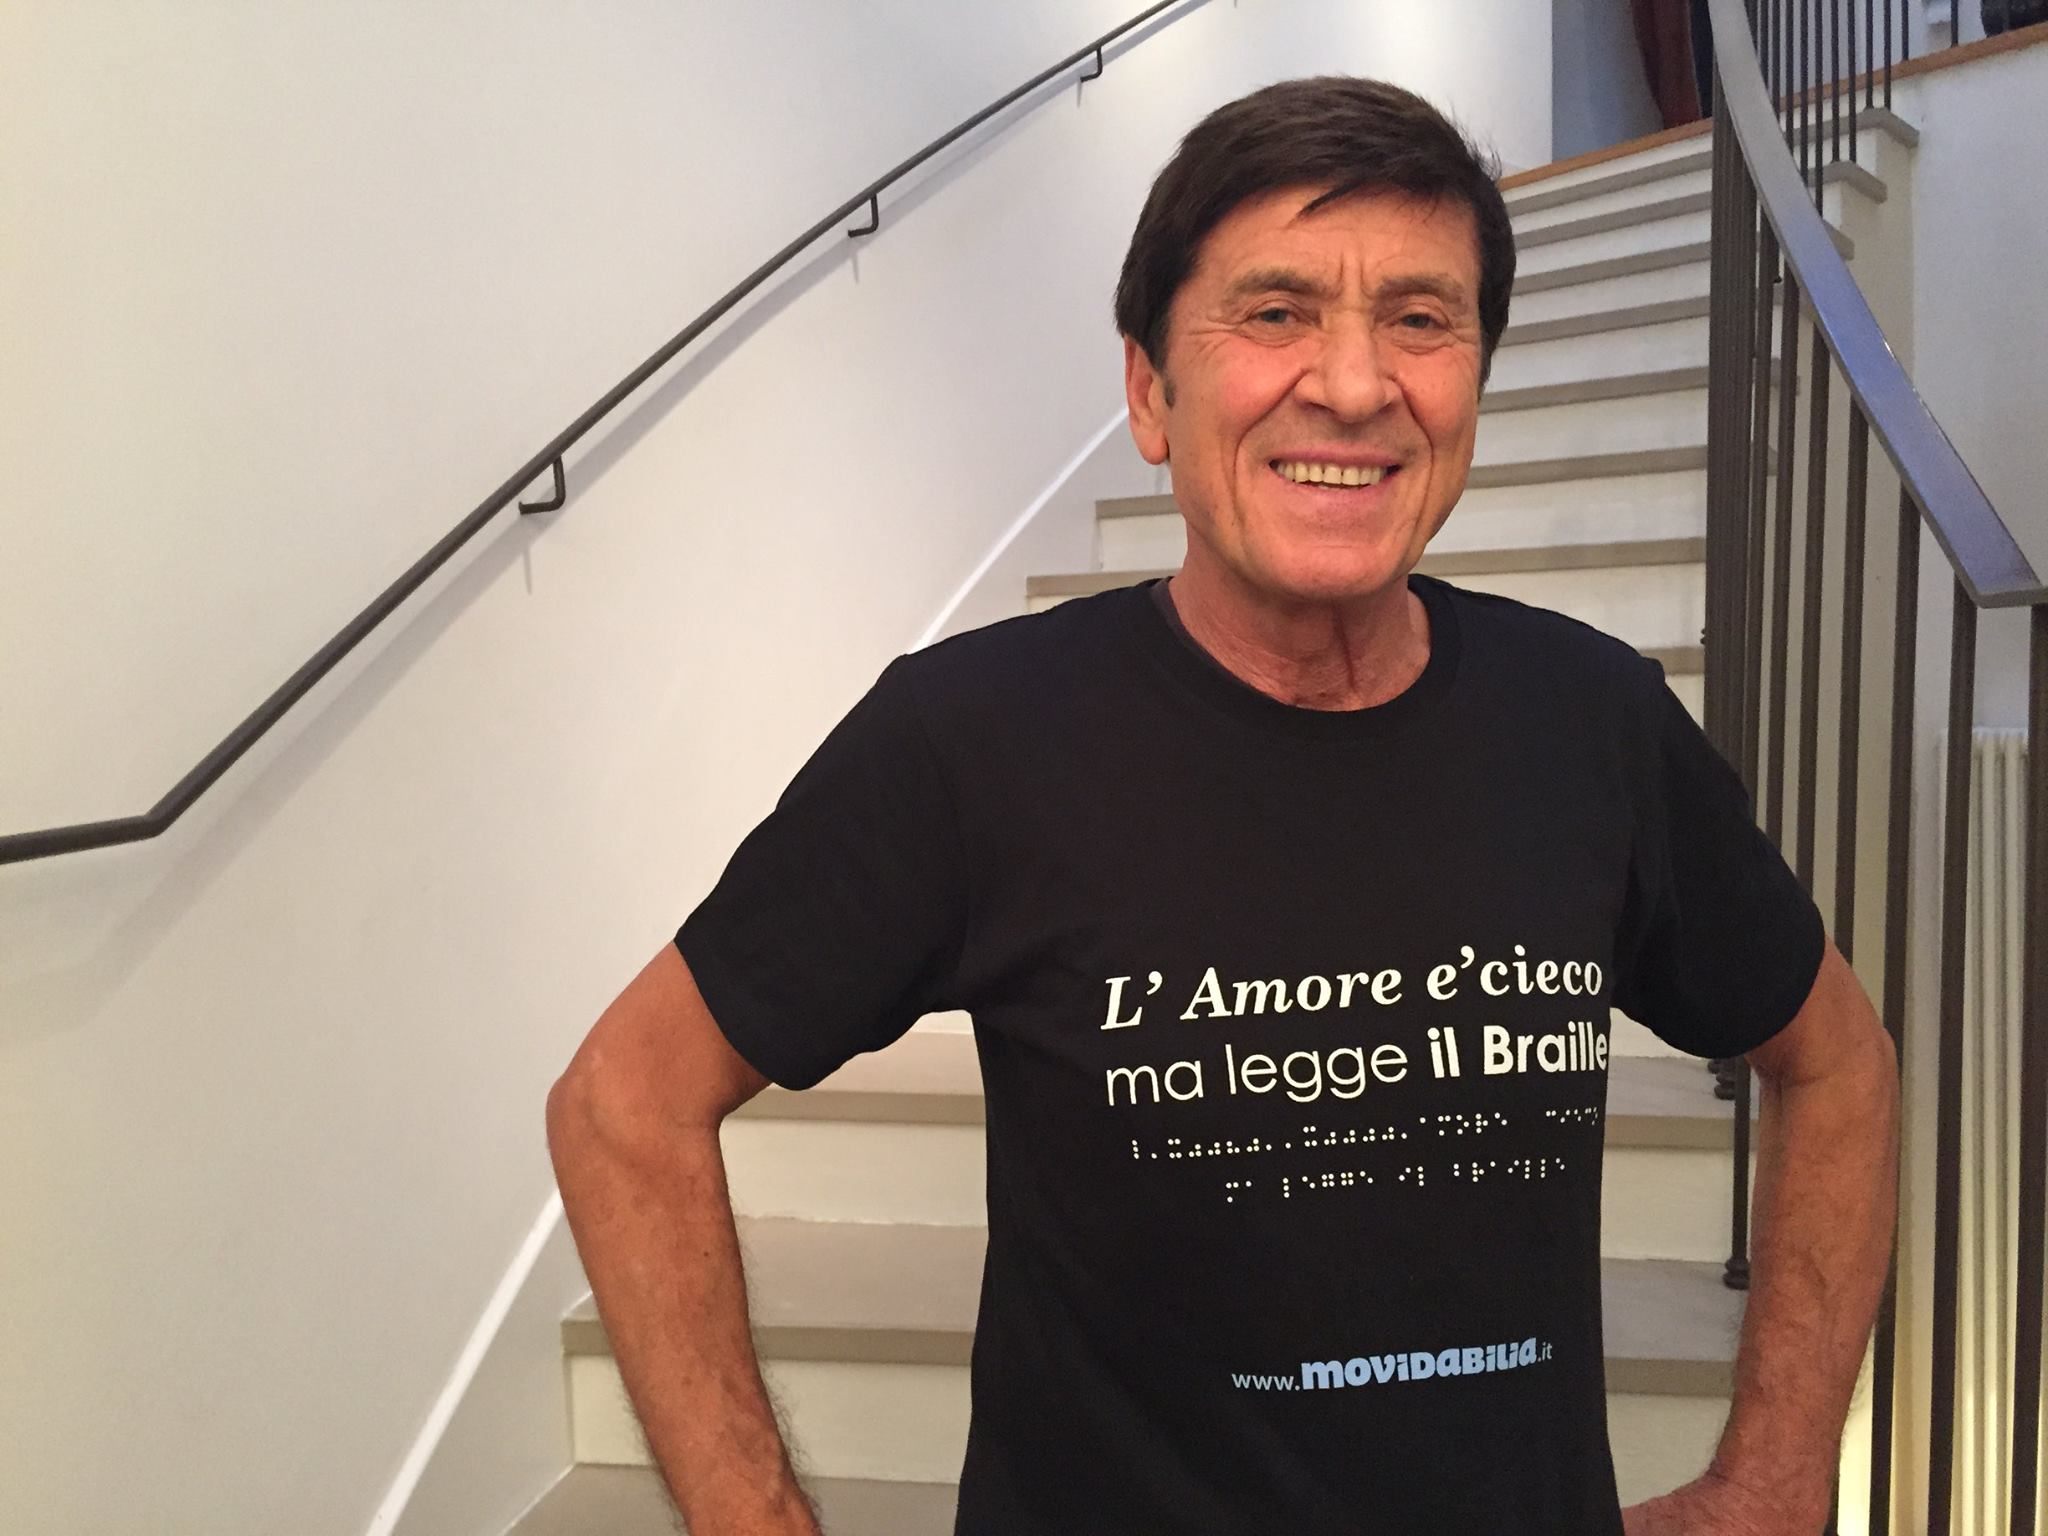 Gianni Morandi davanti alla scala di casa sua, con la maglietta di Accessibility is cool